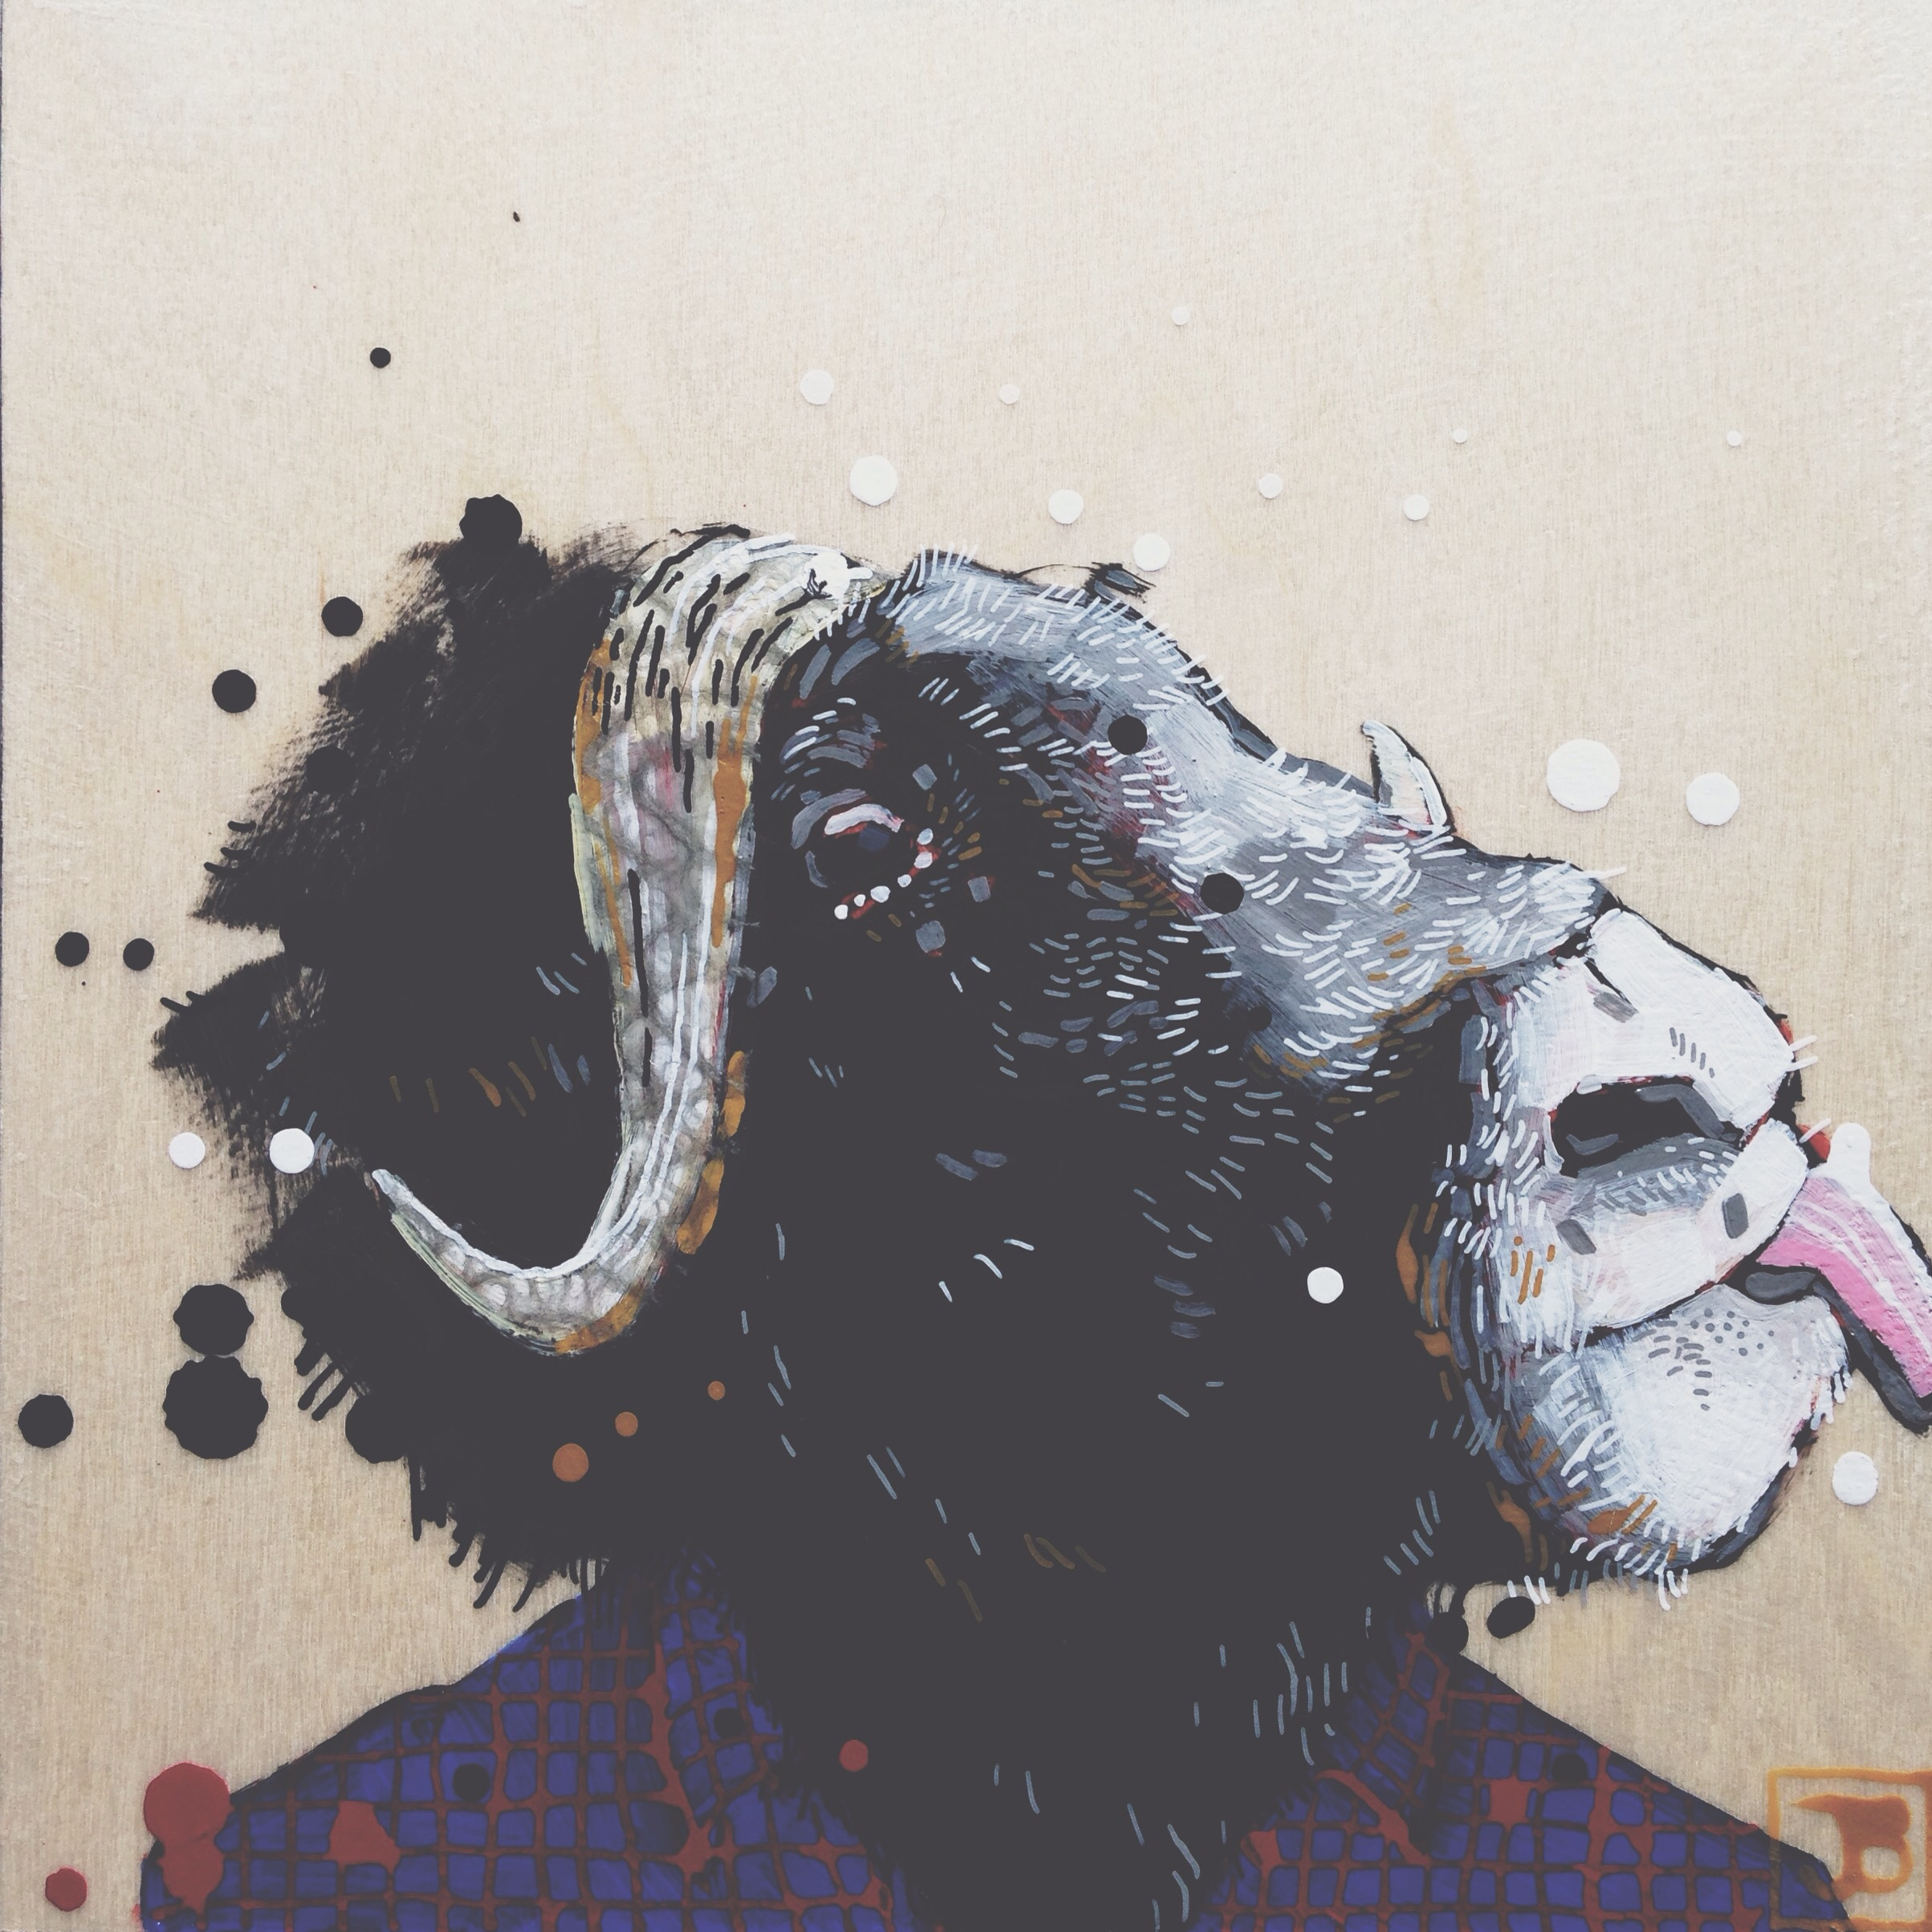 musk ox, mixed media on wood panel, 8x8, 2016